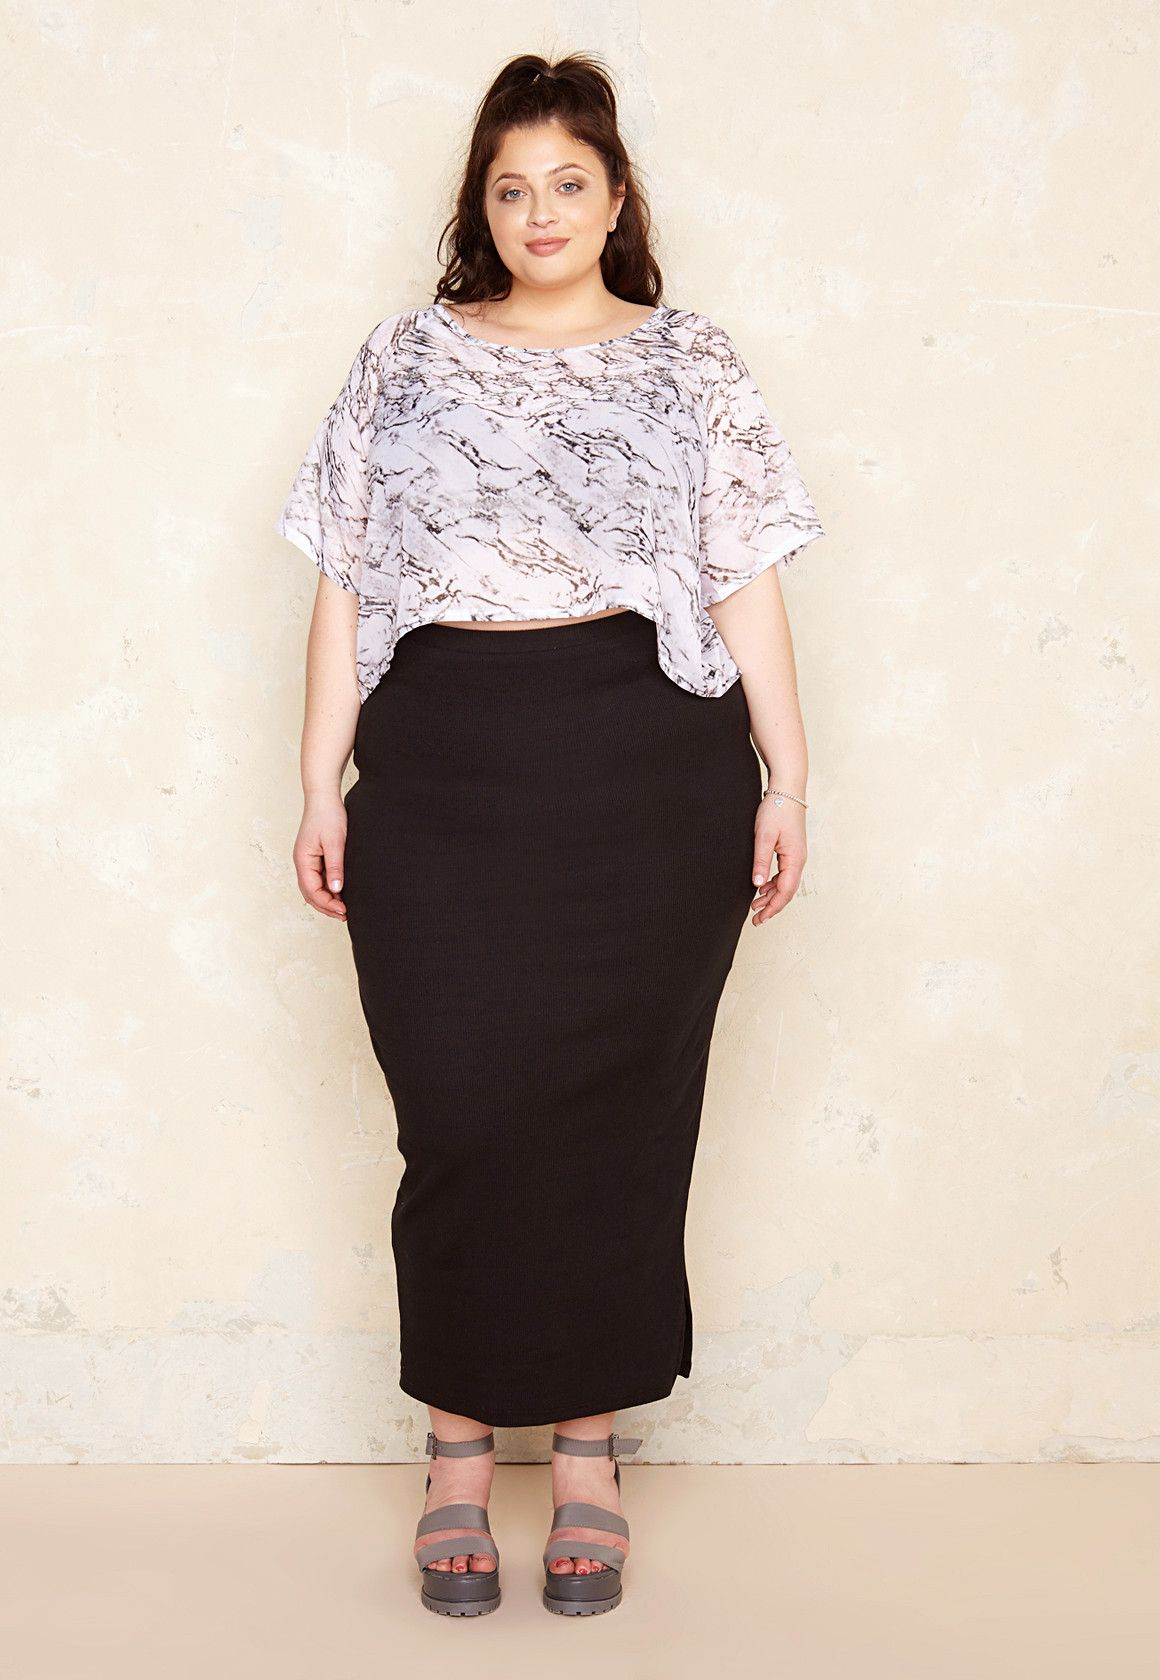 """Skirt:  Maxi Length Side Split Ribbed Fabric Figure Hugging 60%Polyester, 30%Cotton, 10%Elastane  Our model wears size 20 and is 5'8""""/177cm."""